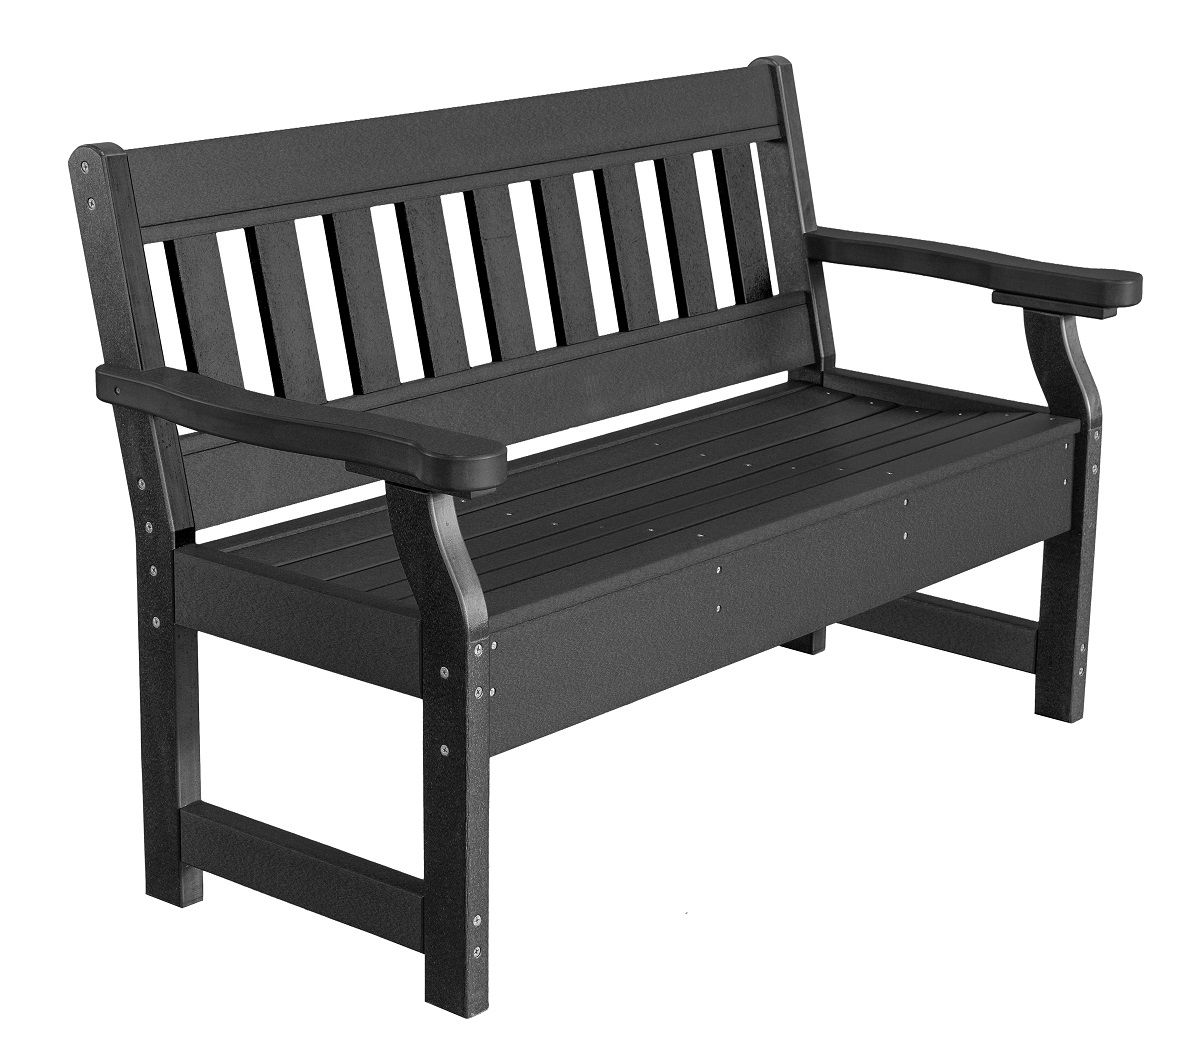 Black Aden Garden Bench